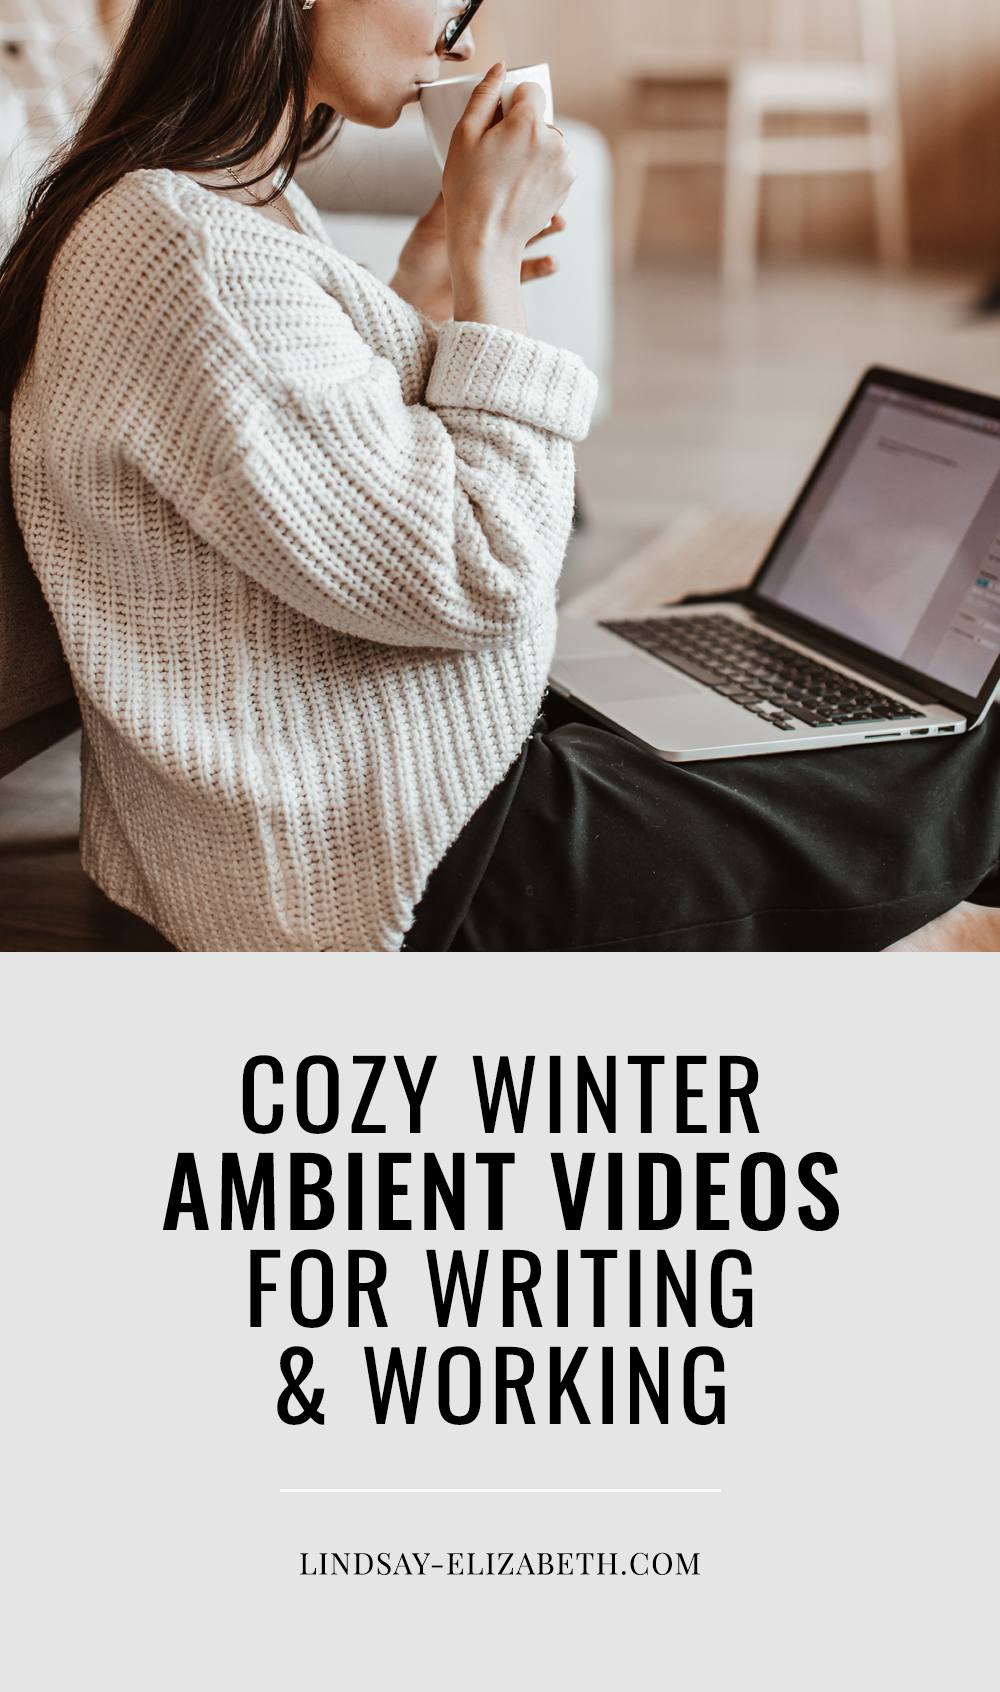 Ambient sounds (the background noise of an atmosphere) are known to help people focus better. Try these cozy ambient videos with winter and holiday themes to help you focus while writing and working and get into the spirit of the season. #writingtips #productivityhack #productivity #creativity